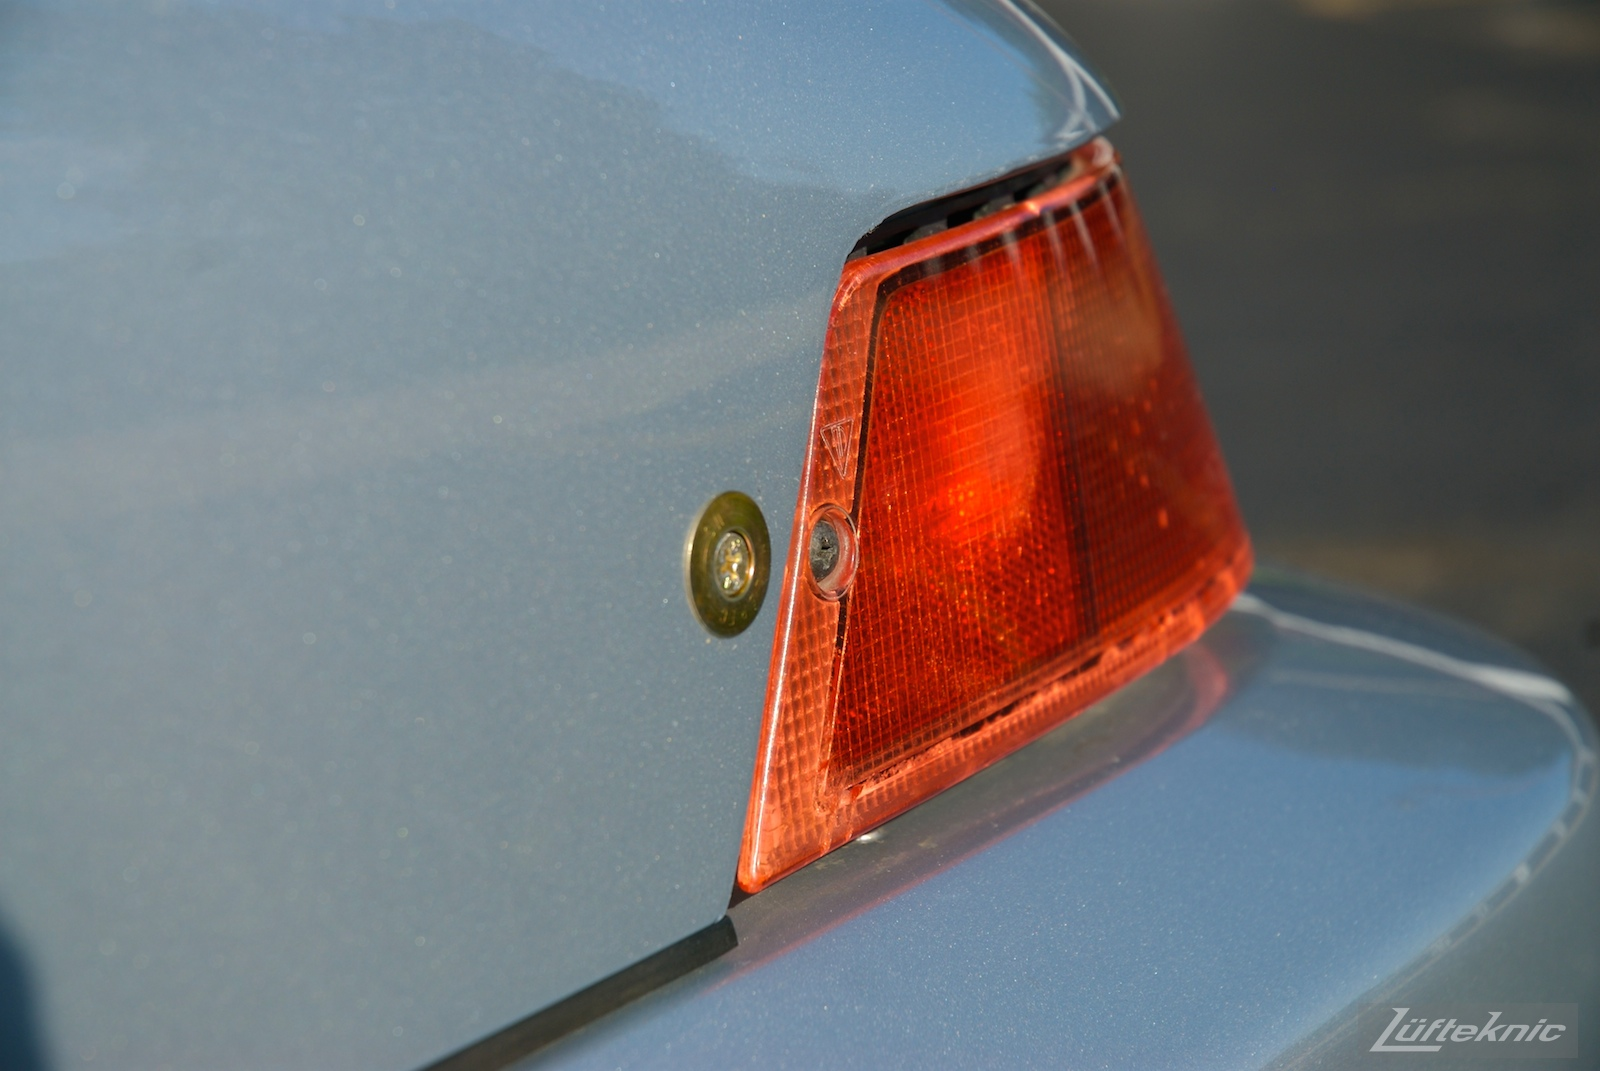 Worn rear tail light and cam lock faster detail shot on the 964 RS America